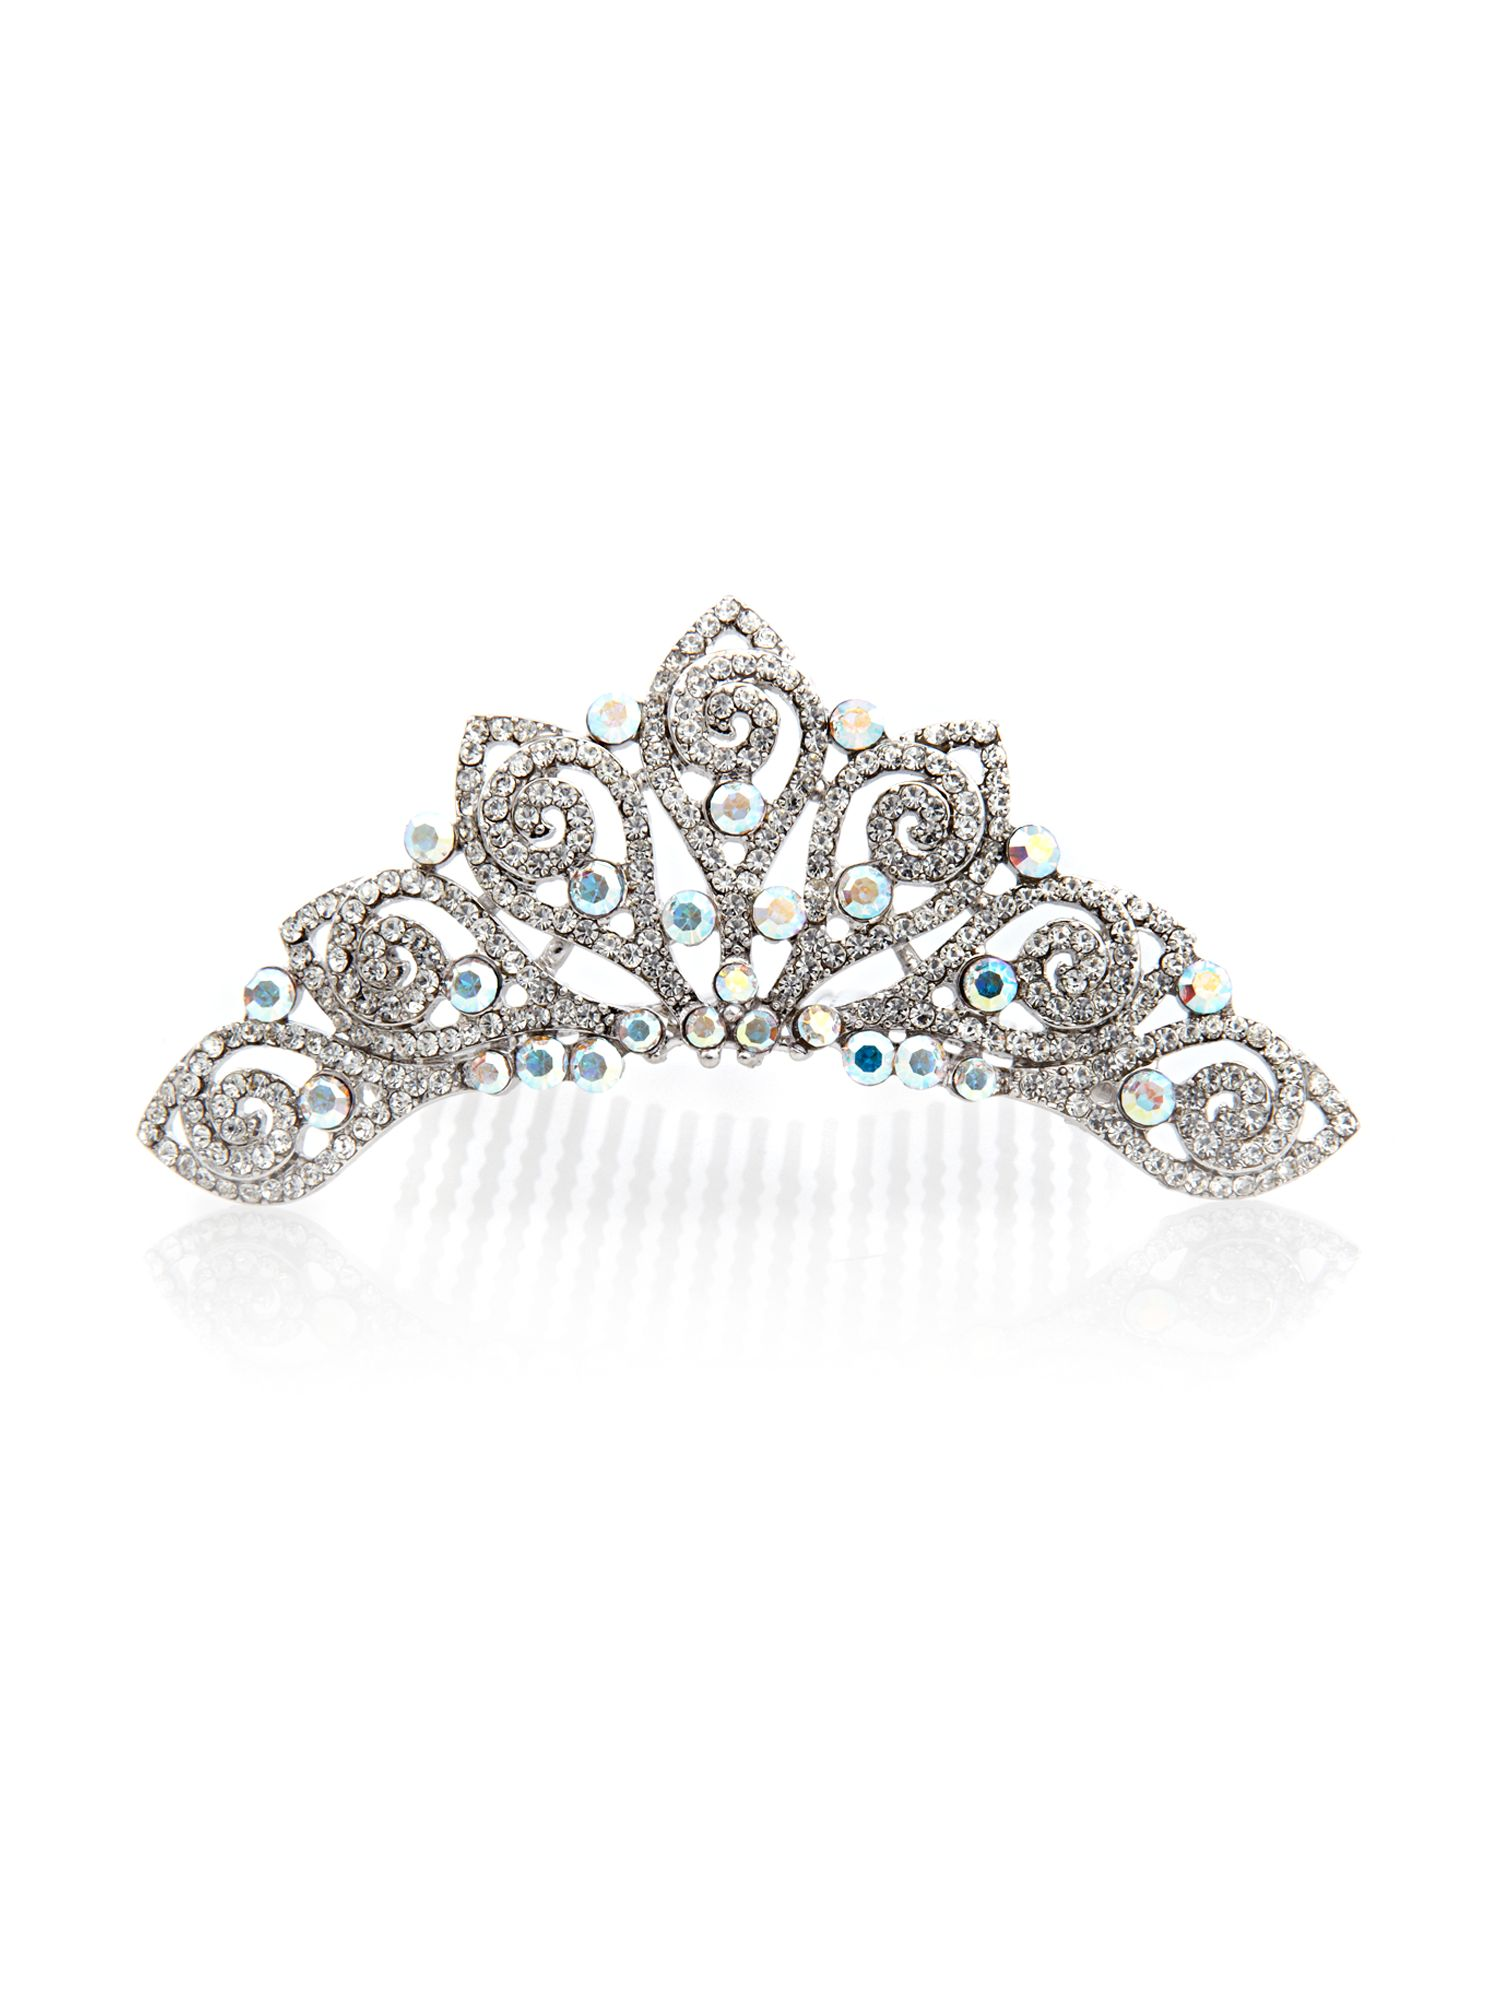 Crystal AB tiara with swarovski crystals